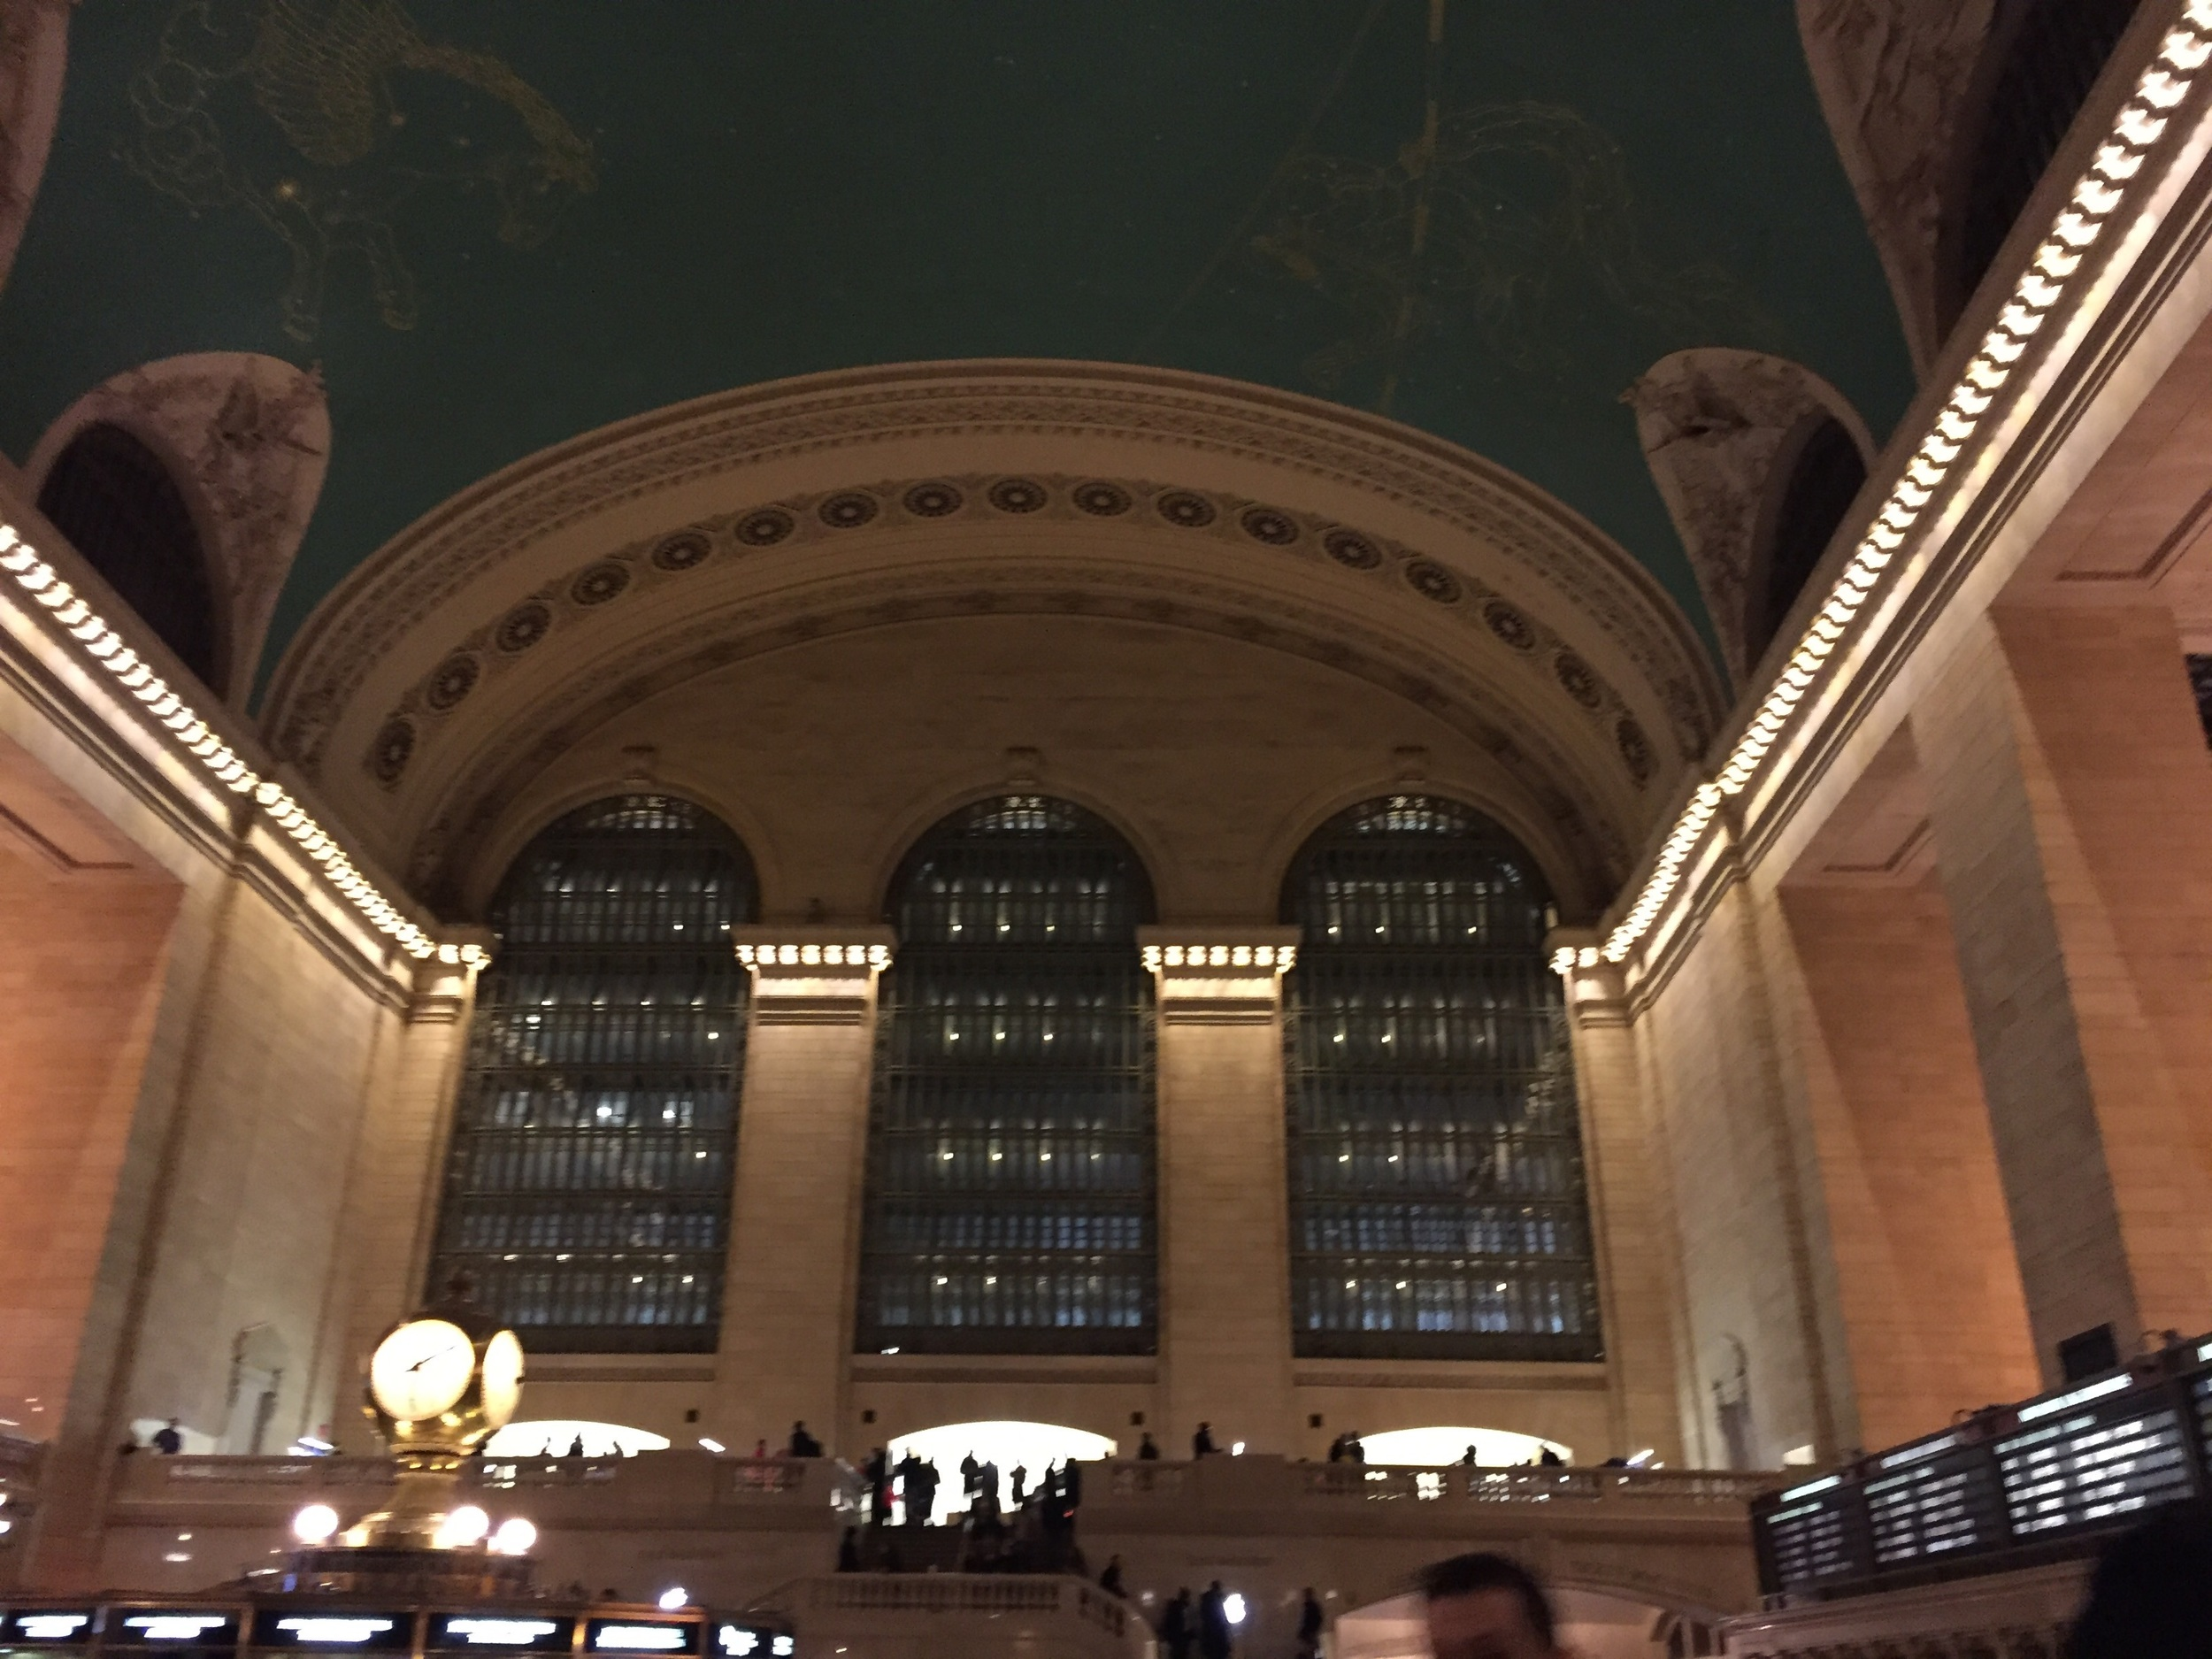 This is Grand Central Station - gorgeous and massive!